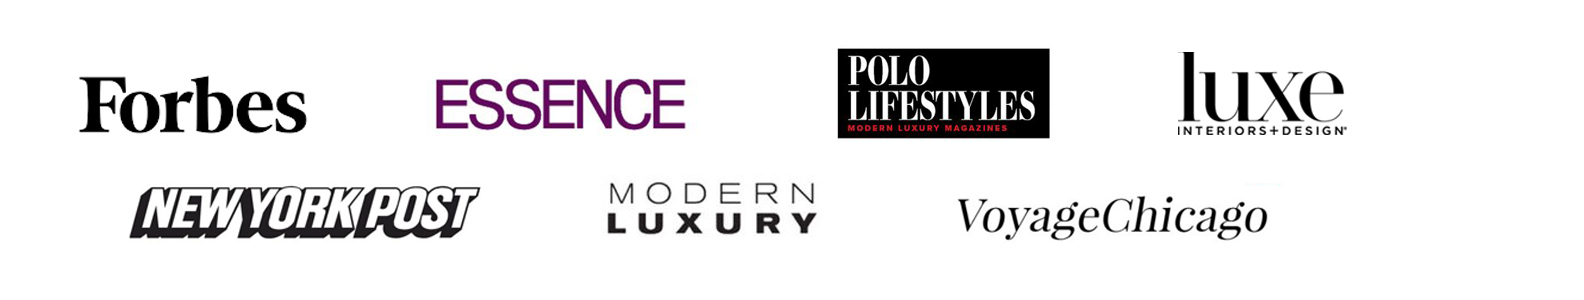 Chelsea Mazur Photography published in Forbes, Luxe interiors and design, Polo Lifestyles, Essence, Voyage Chicago, New York Post, Modern Luxury